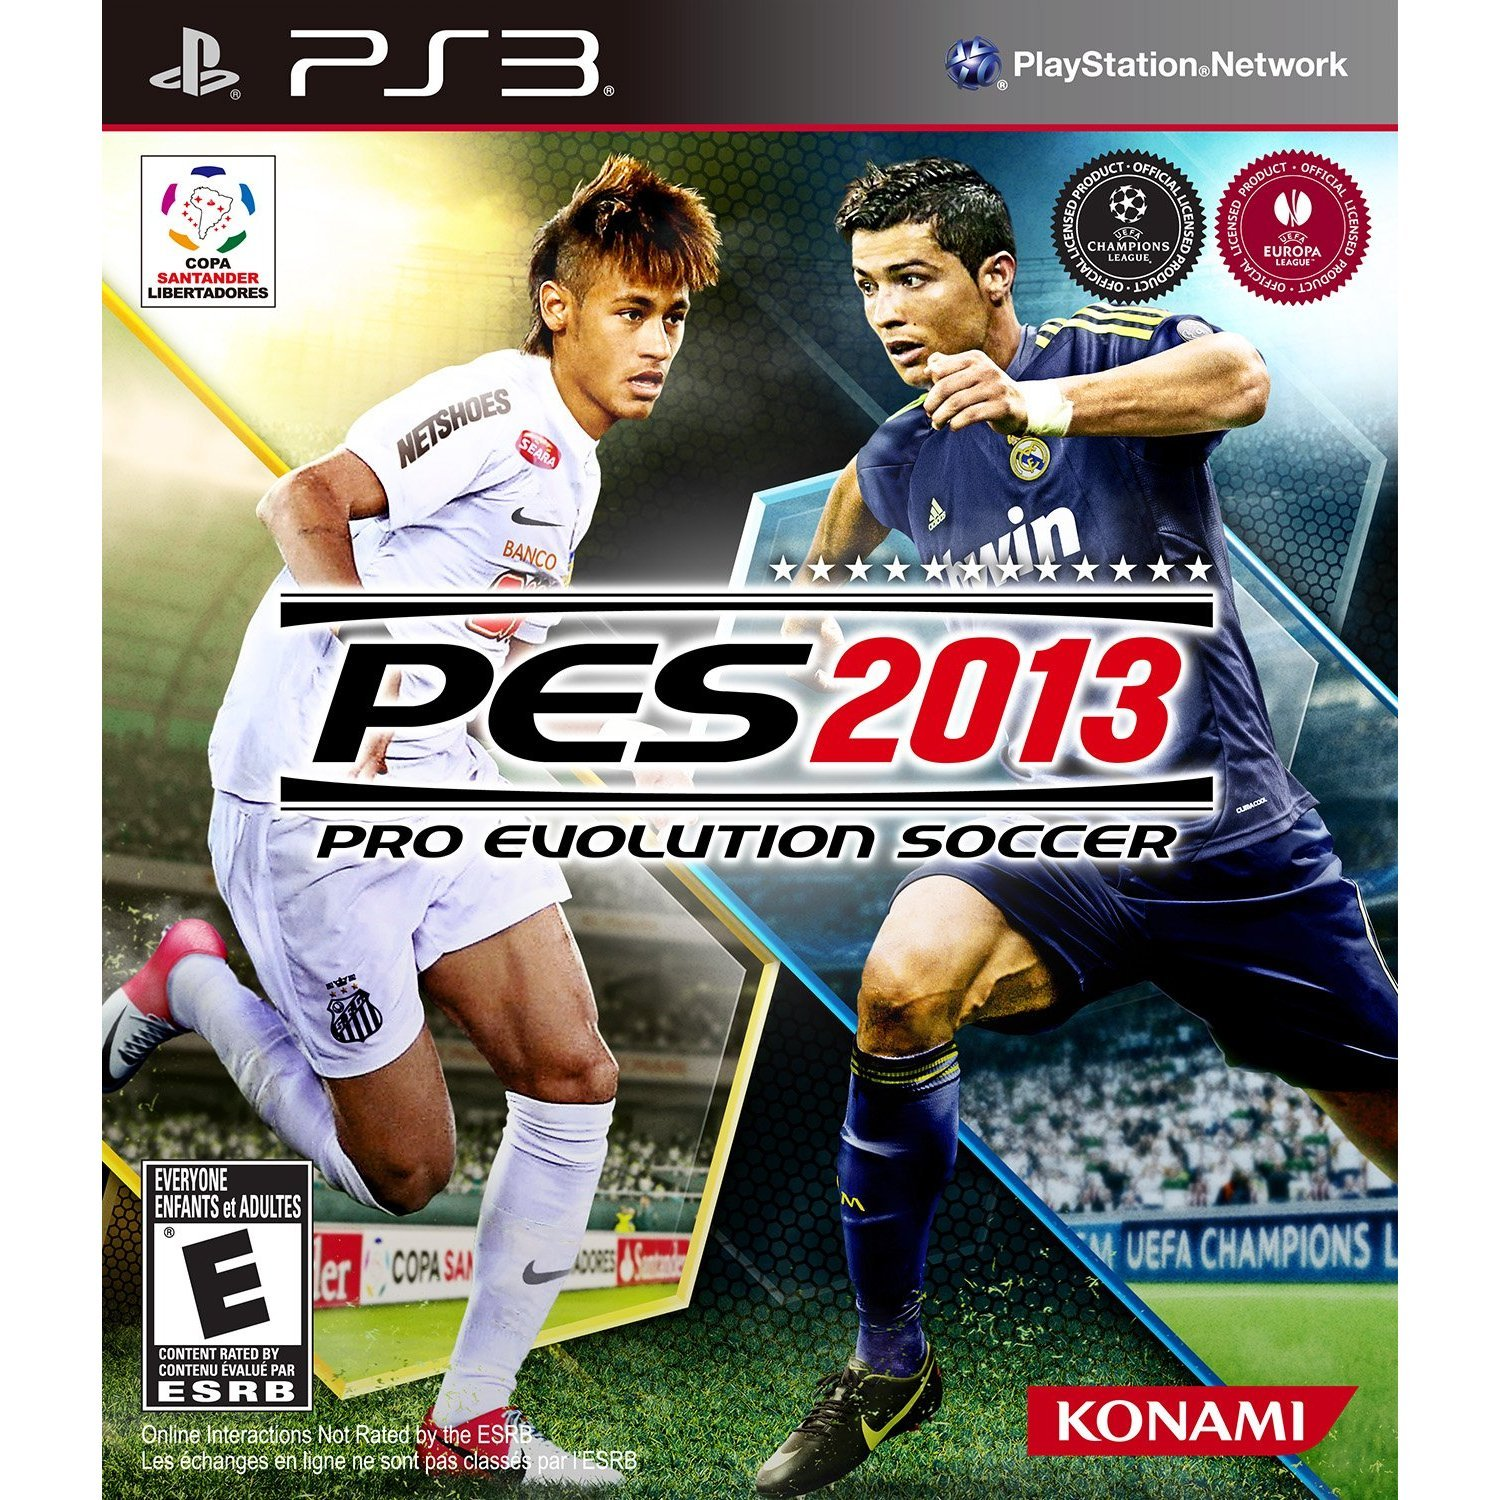 Pro Evolution Soccer 2013 (PS3) Review 2